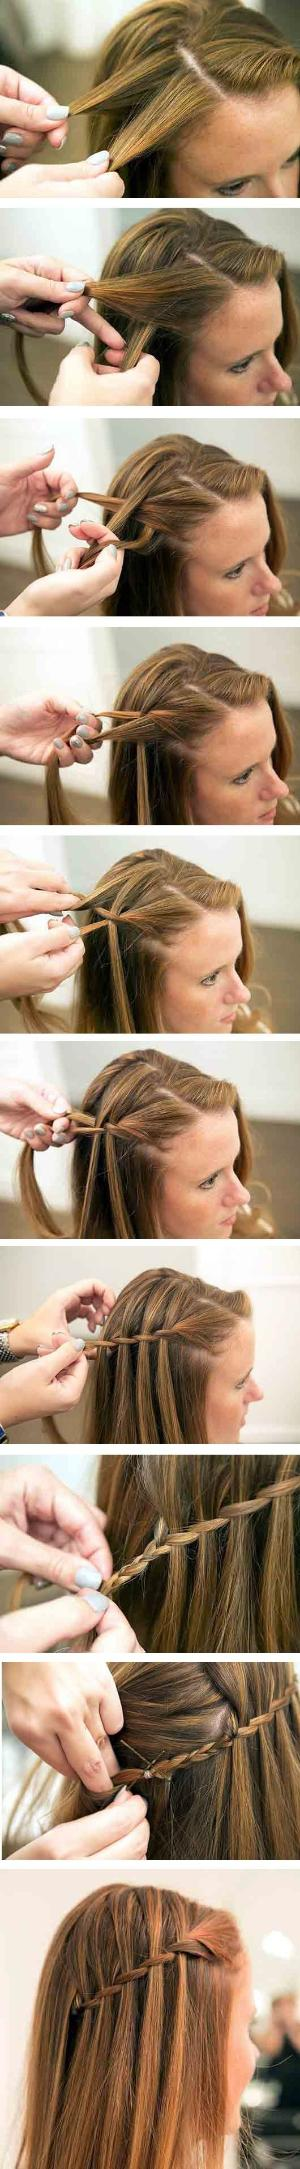 The Waterfall #Braid Tutorial – Step by Step. I need to learn how to do this. I love it so much. by Tinemor